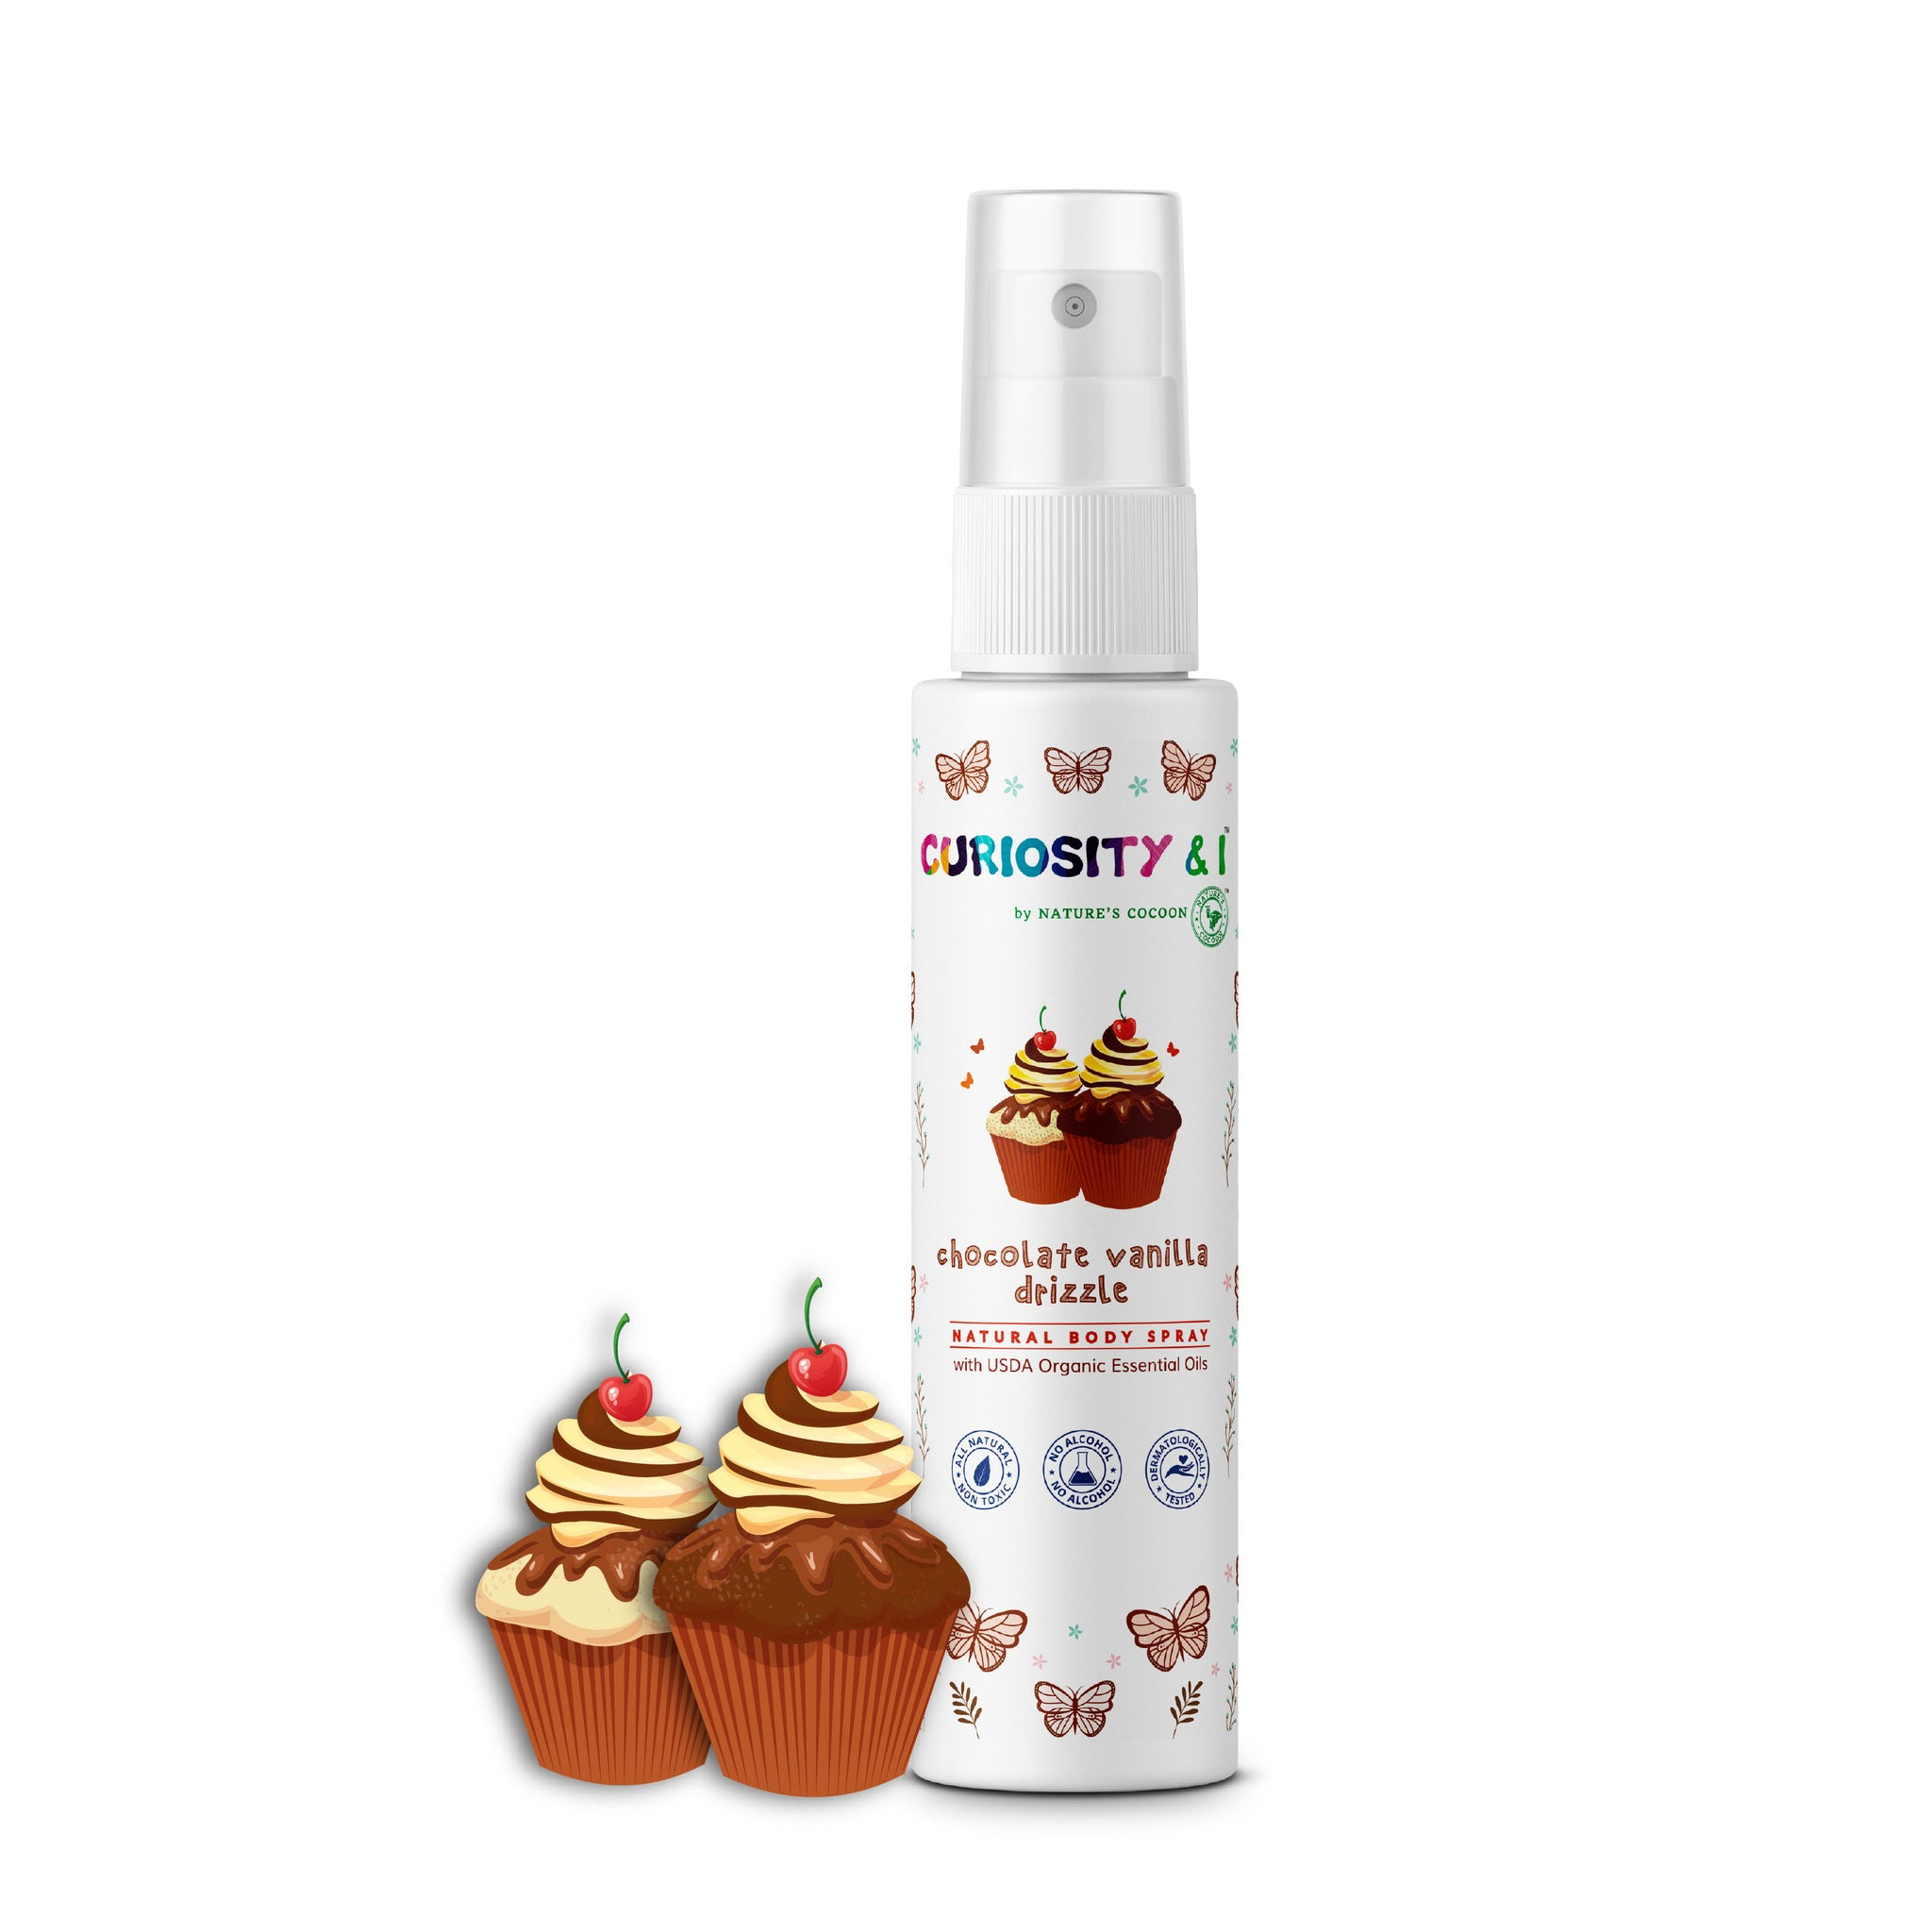 Kids Natural Body Spray - Chocolate Vanilla Drizzle (100ml) - Curiosity&I